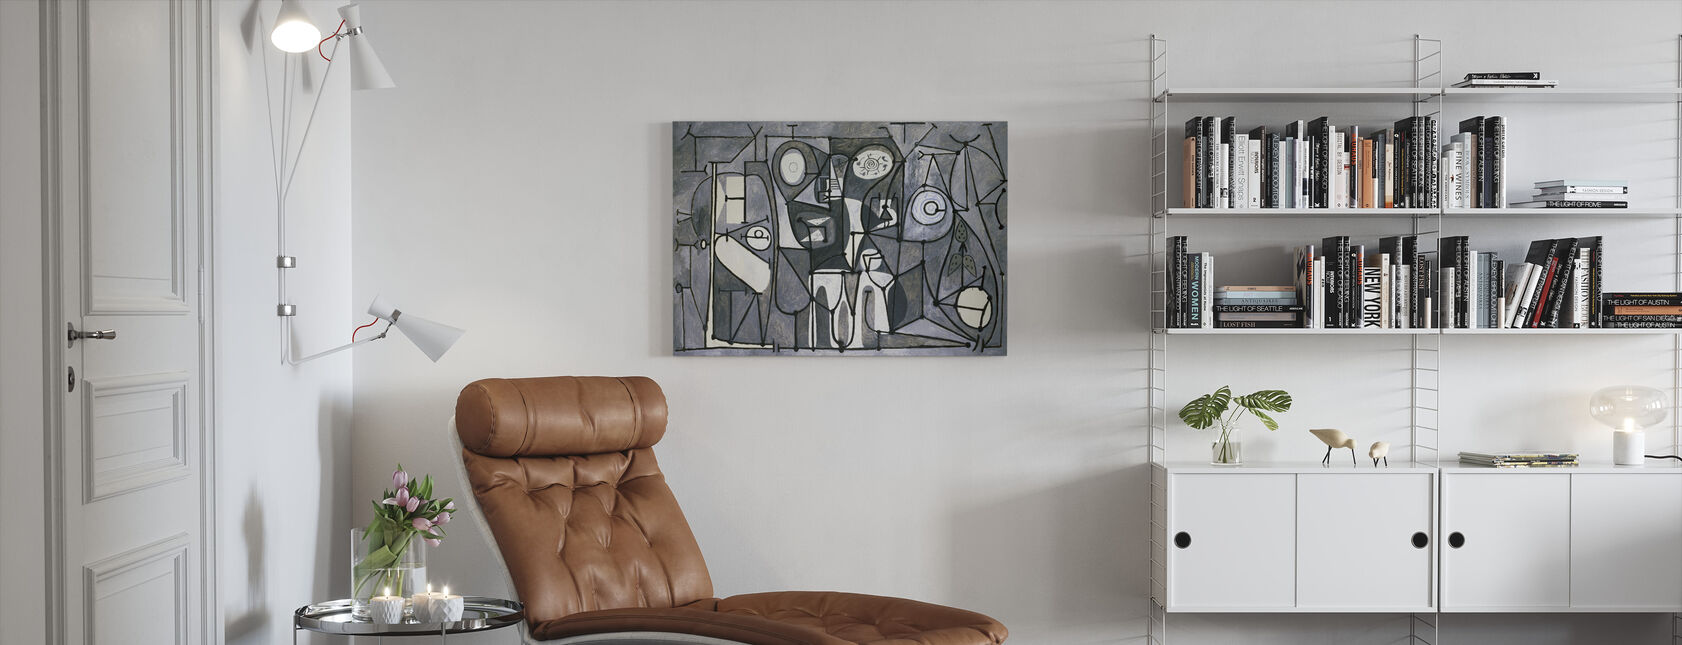 Kitchen - Pablo Picasso - Canvas print - Living Room